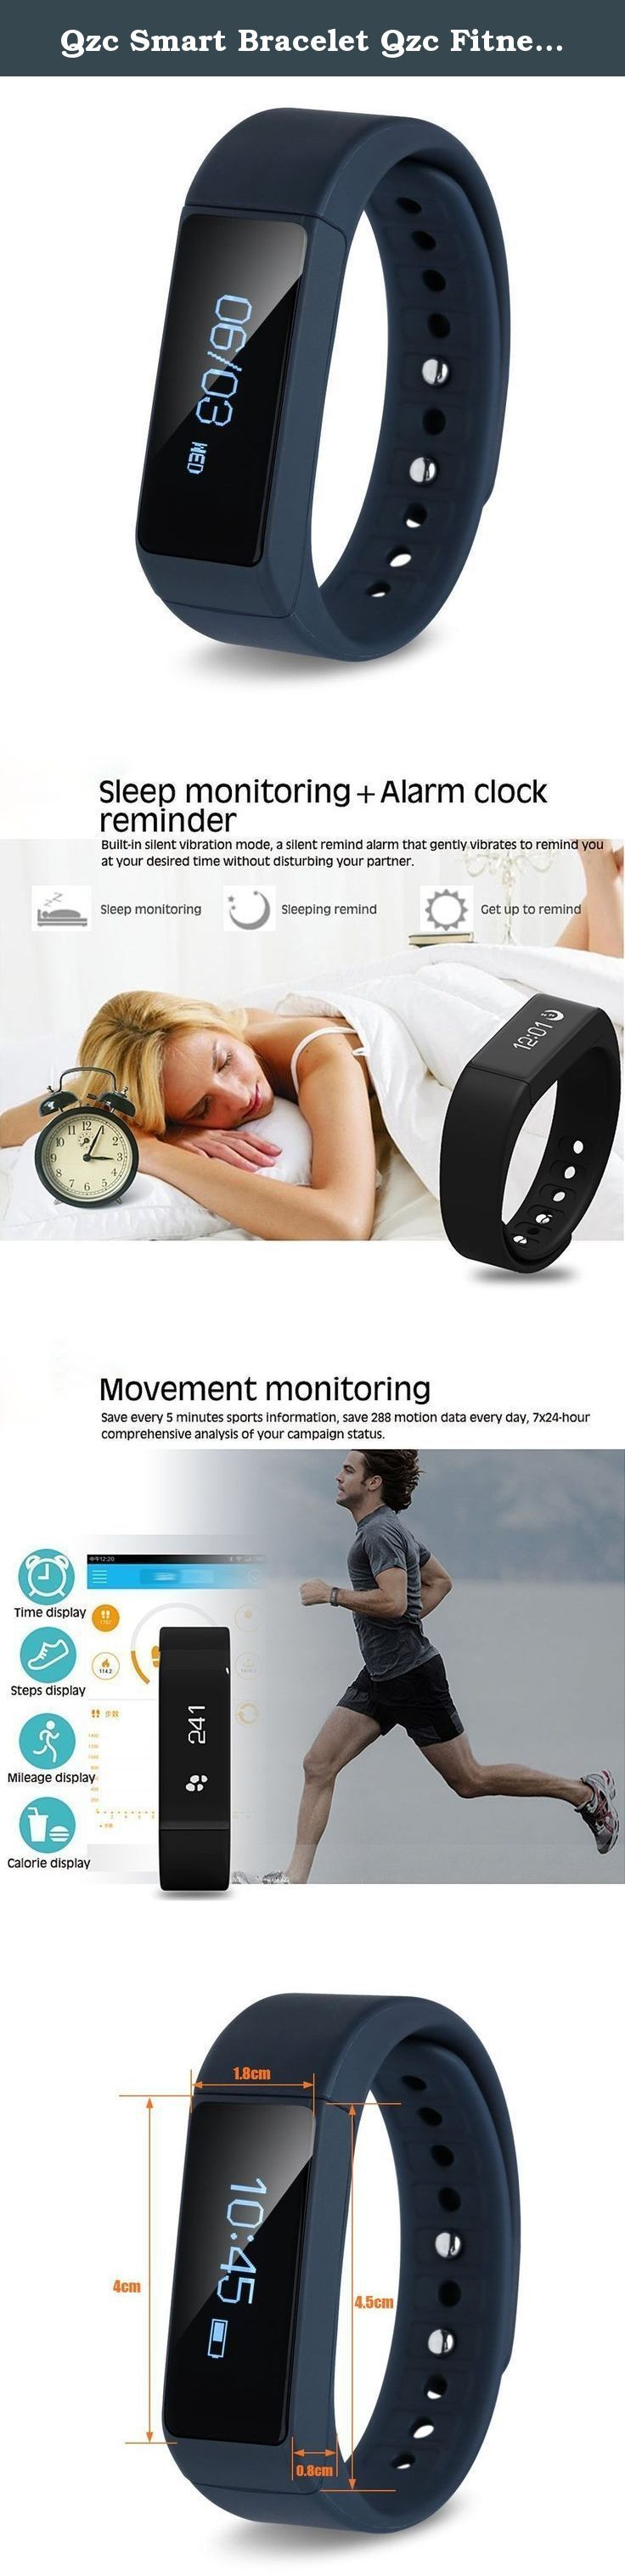 Qzc Smart Bracelet Qzc Fitness Tracker Smart Bluetooth Sports Bracelet Wireless Fitness Pedometer Tracker Activity Tracker with Calories Track Steps Counter Sleep Monitoring for Android and iOS (Blue). Product Features: Call Notification: Show caller ID when receive a call SMS Notification: Show contacts and content of SMS of your smart phone App message notification: Show content of Facebook, Twitter etc Pedometer: Track the steps and distance you walk or run Calories Tracking: Track the...